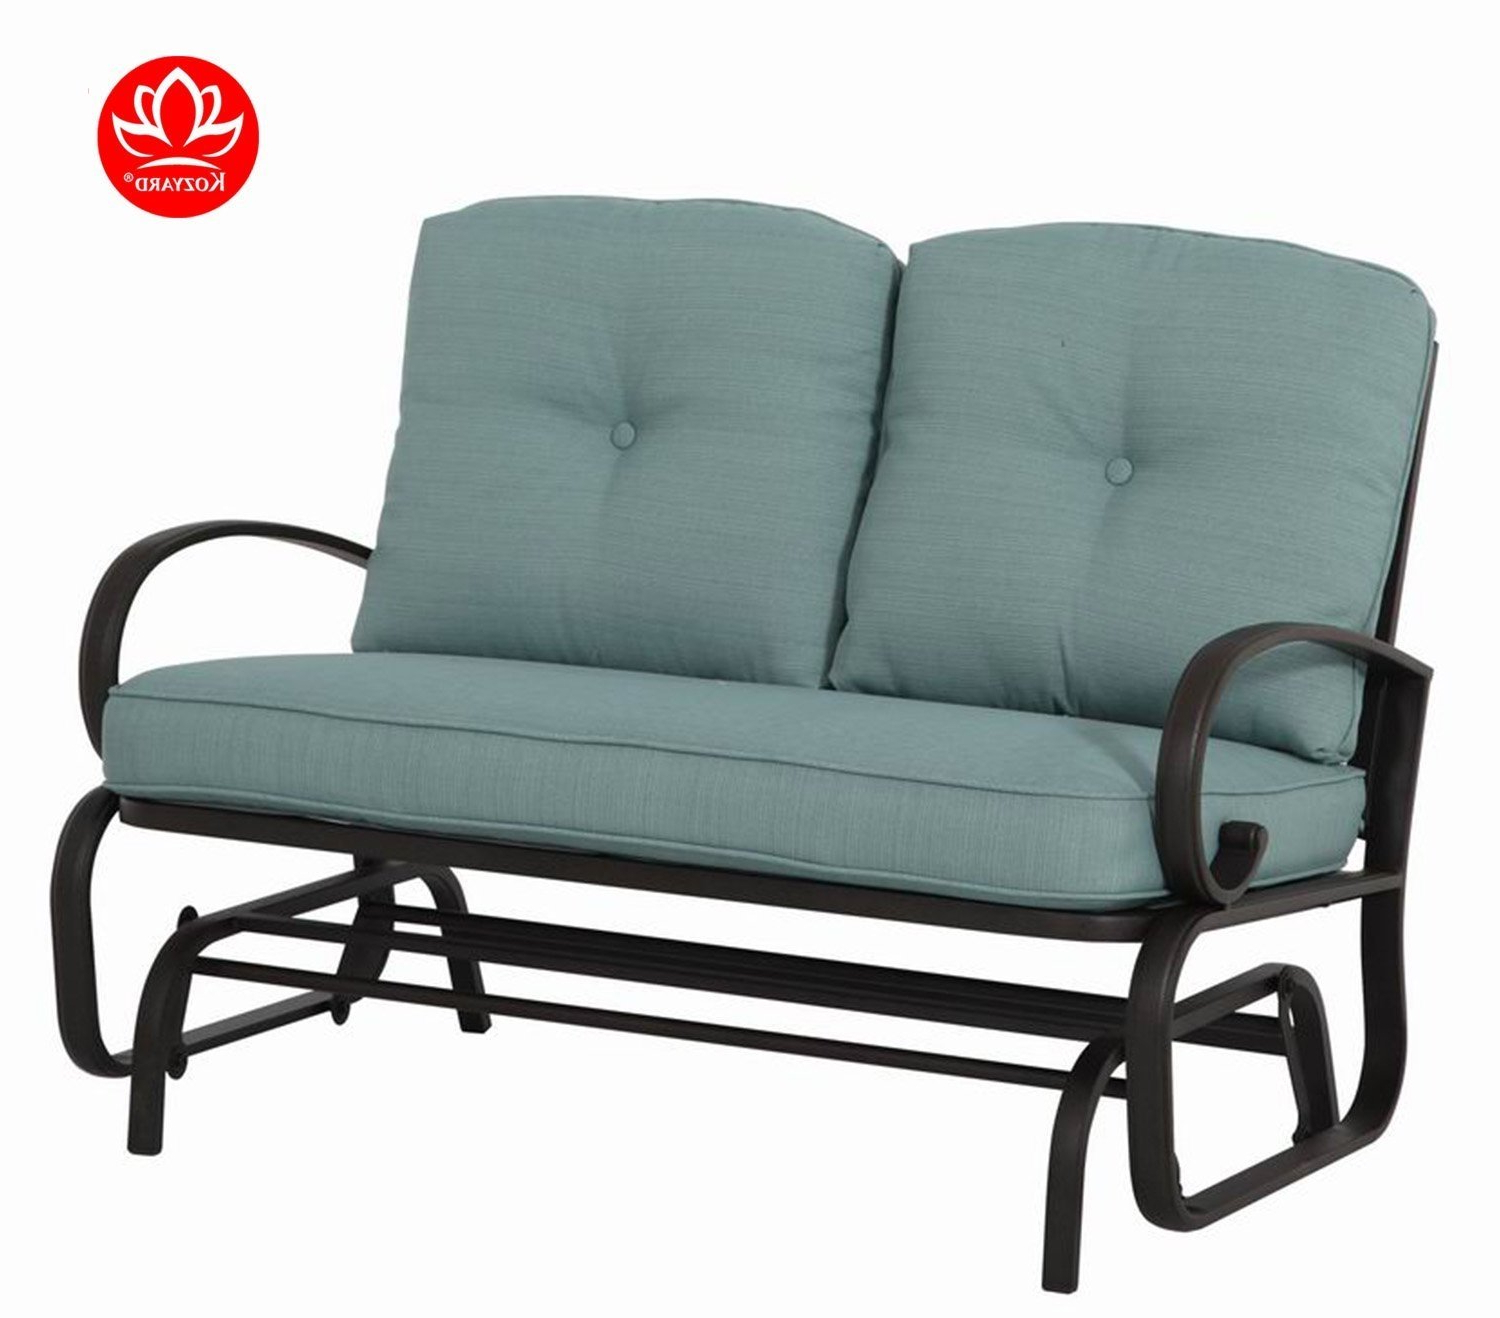 Rocking Love Seats Glider Swing Benches With Sturdy Frame For 2019 Kozyard Cozy Two Rocking Love Seats Glider Swing Bench (View 2 of 25)